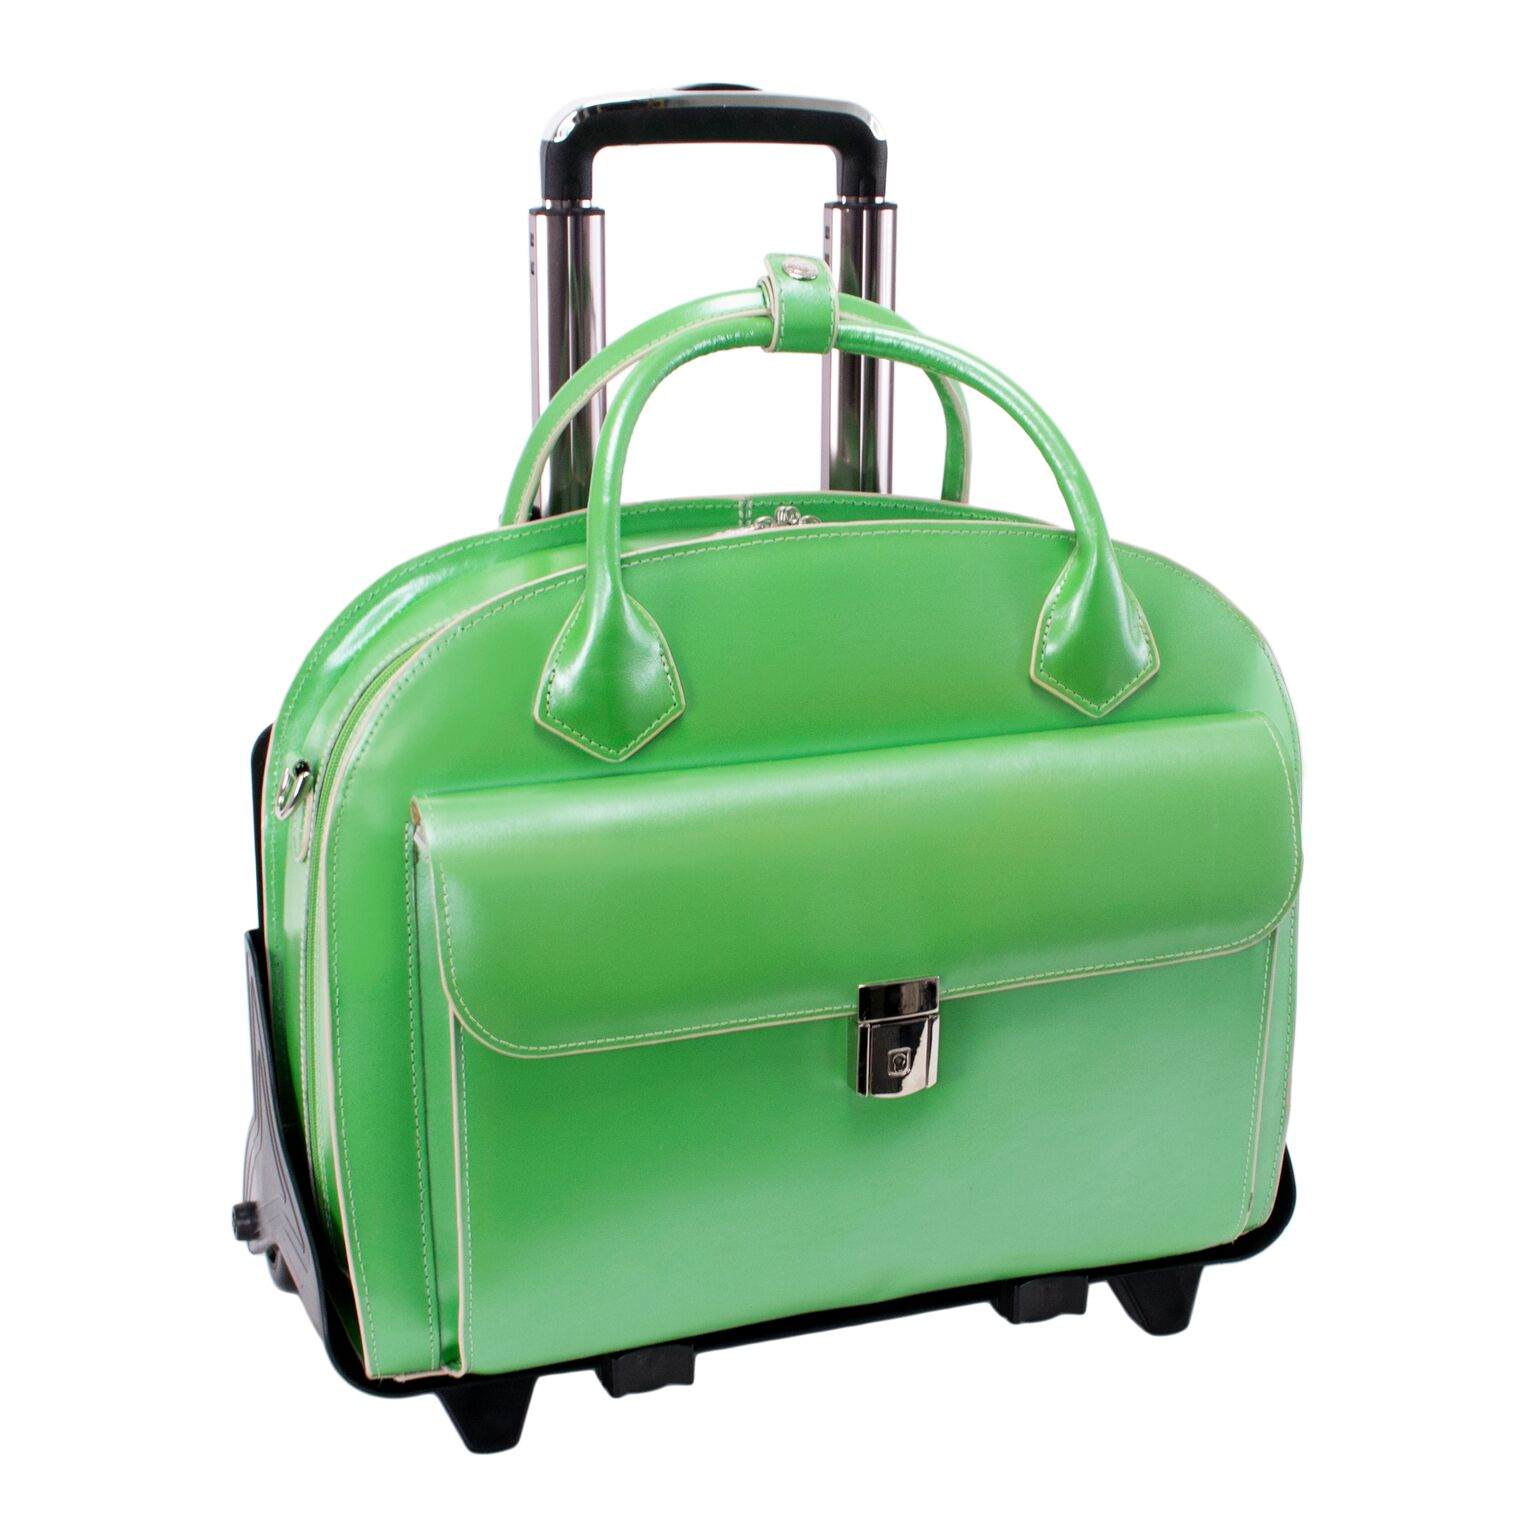 Mcklein USA 94361 Glen Ellyn W Series Leather Detachable-Wheeled Ladies Case with Removable Sleeve - Green